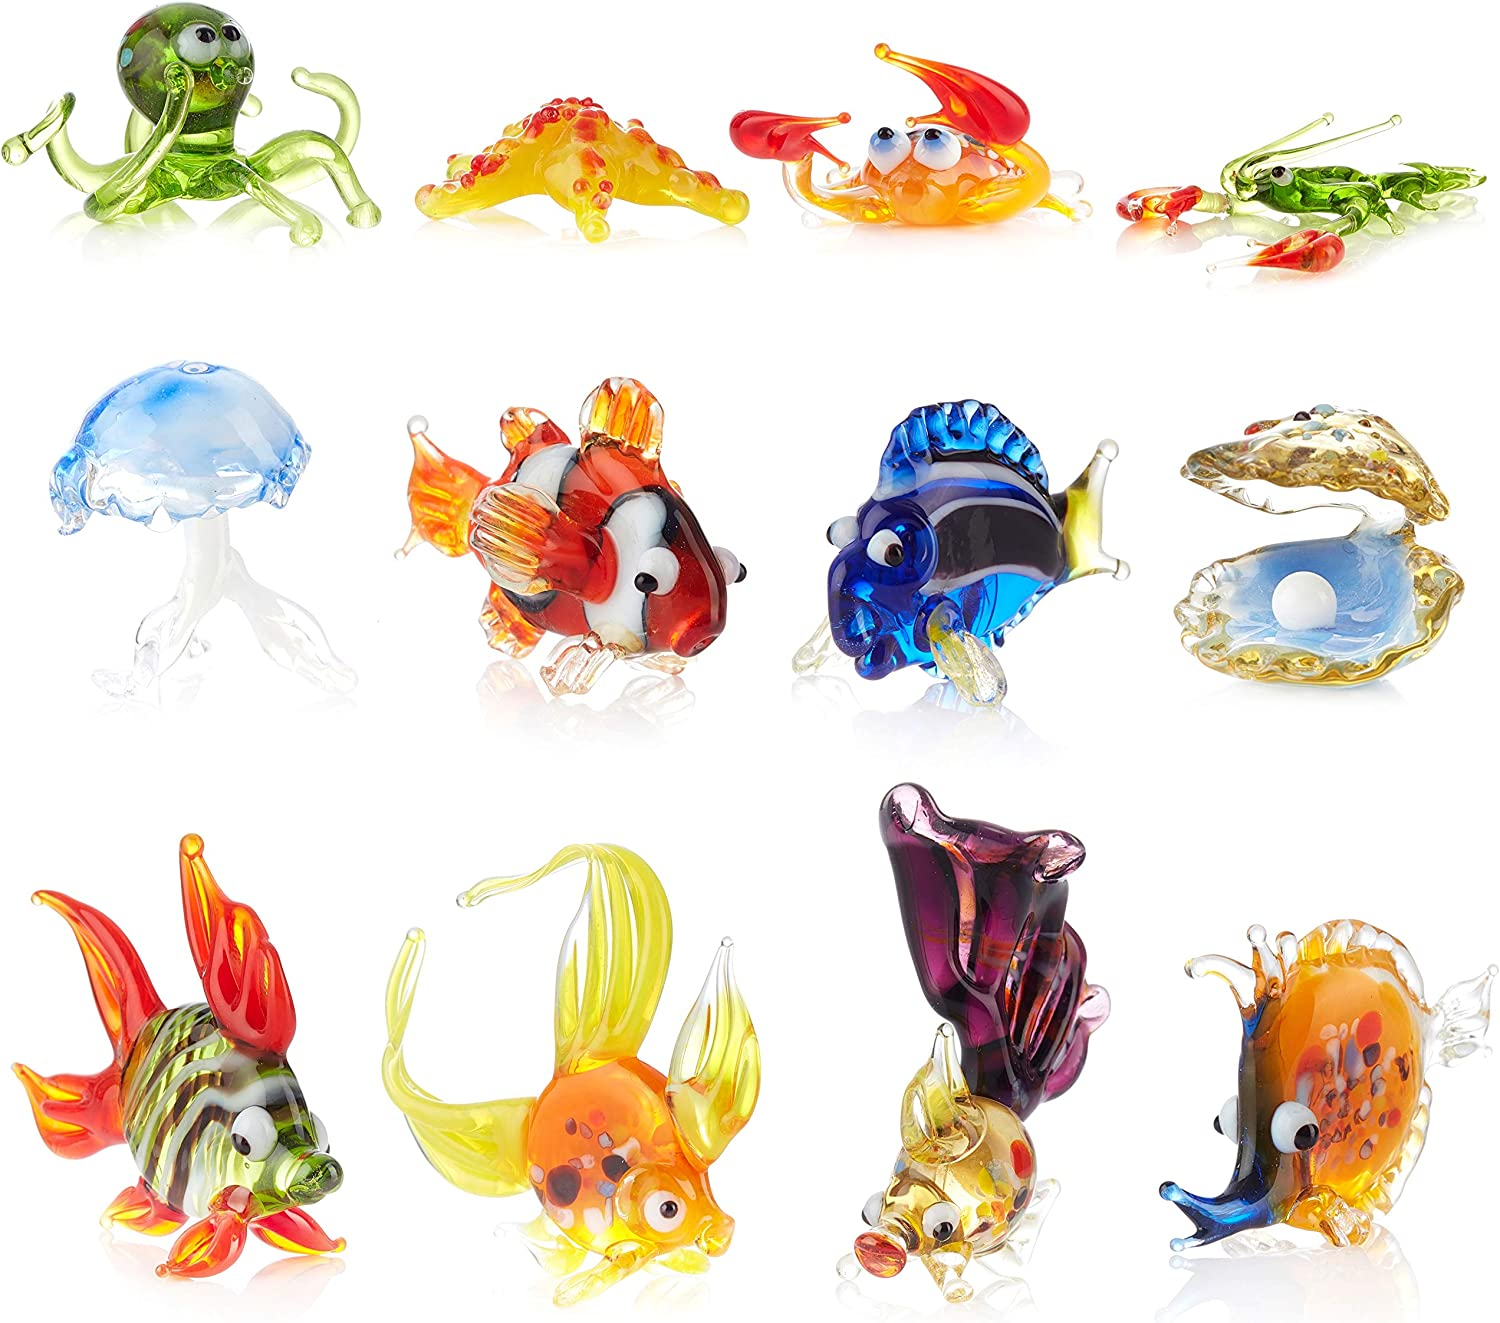 Aquarium Decorations Manufacturer direct delivery Glass Recommendation Figurines - Handmade Blowing Co